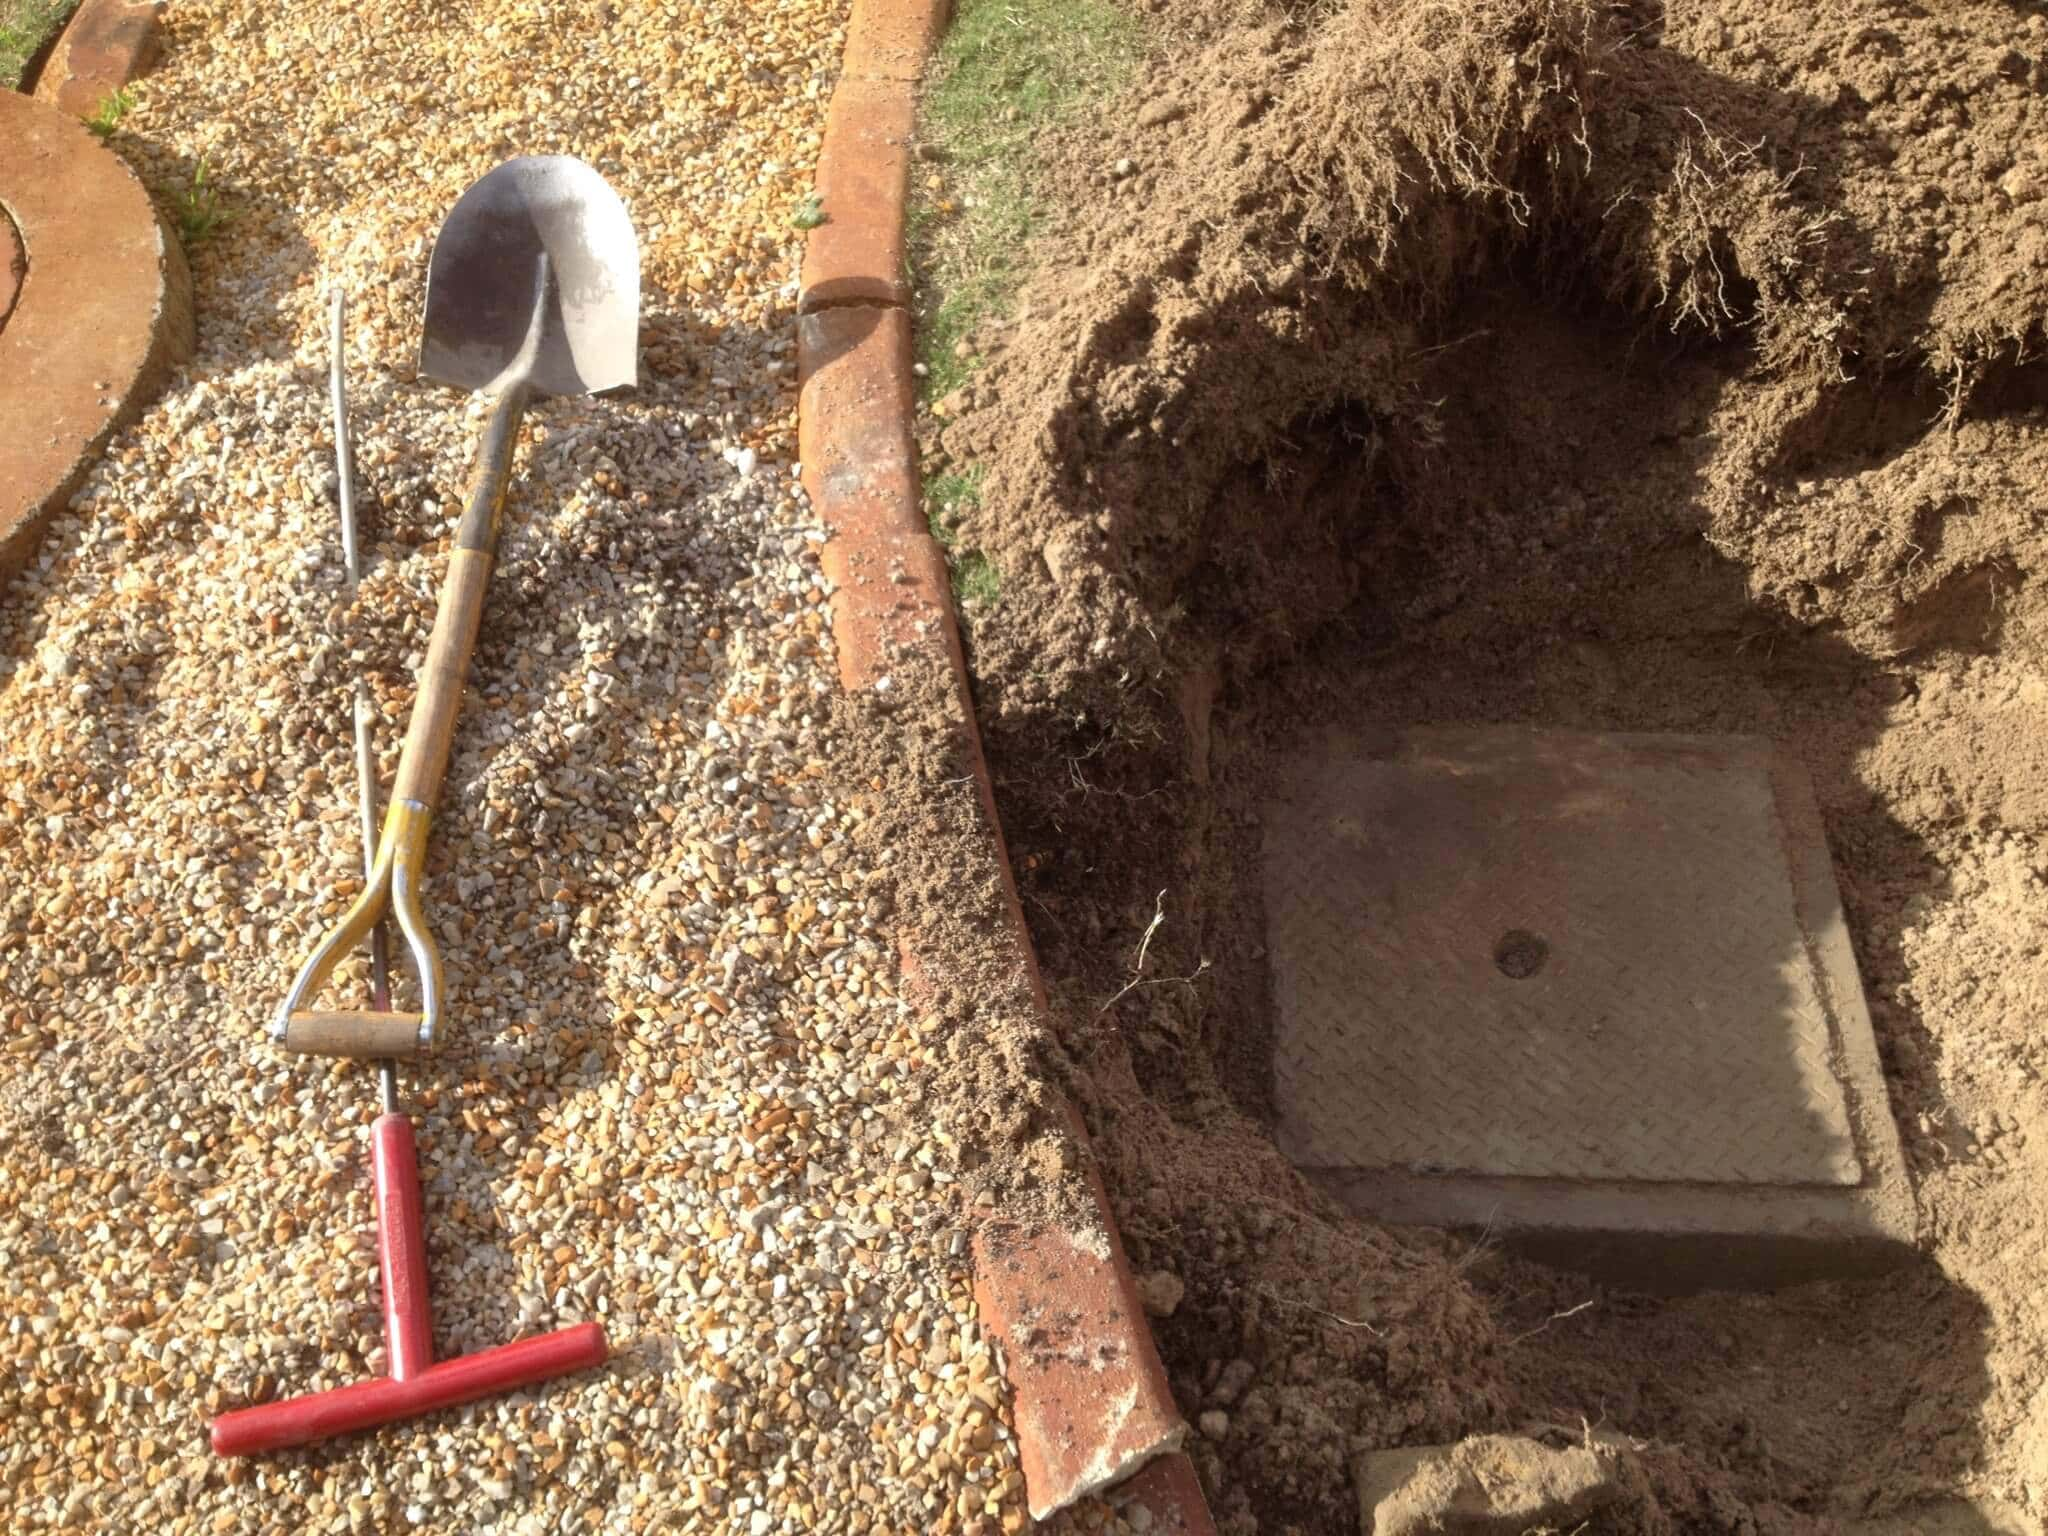 Everyday Plumbers Commercial Plumbing Services - Strata Plumbing Septic Tank 2132